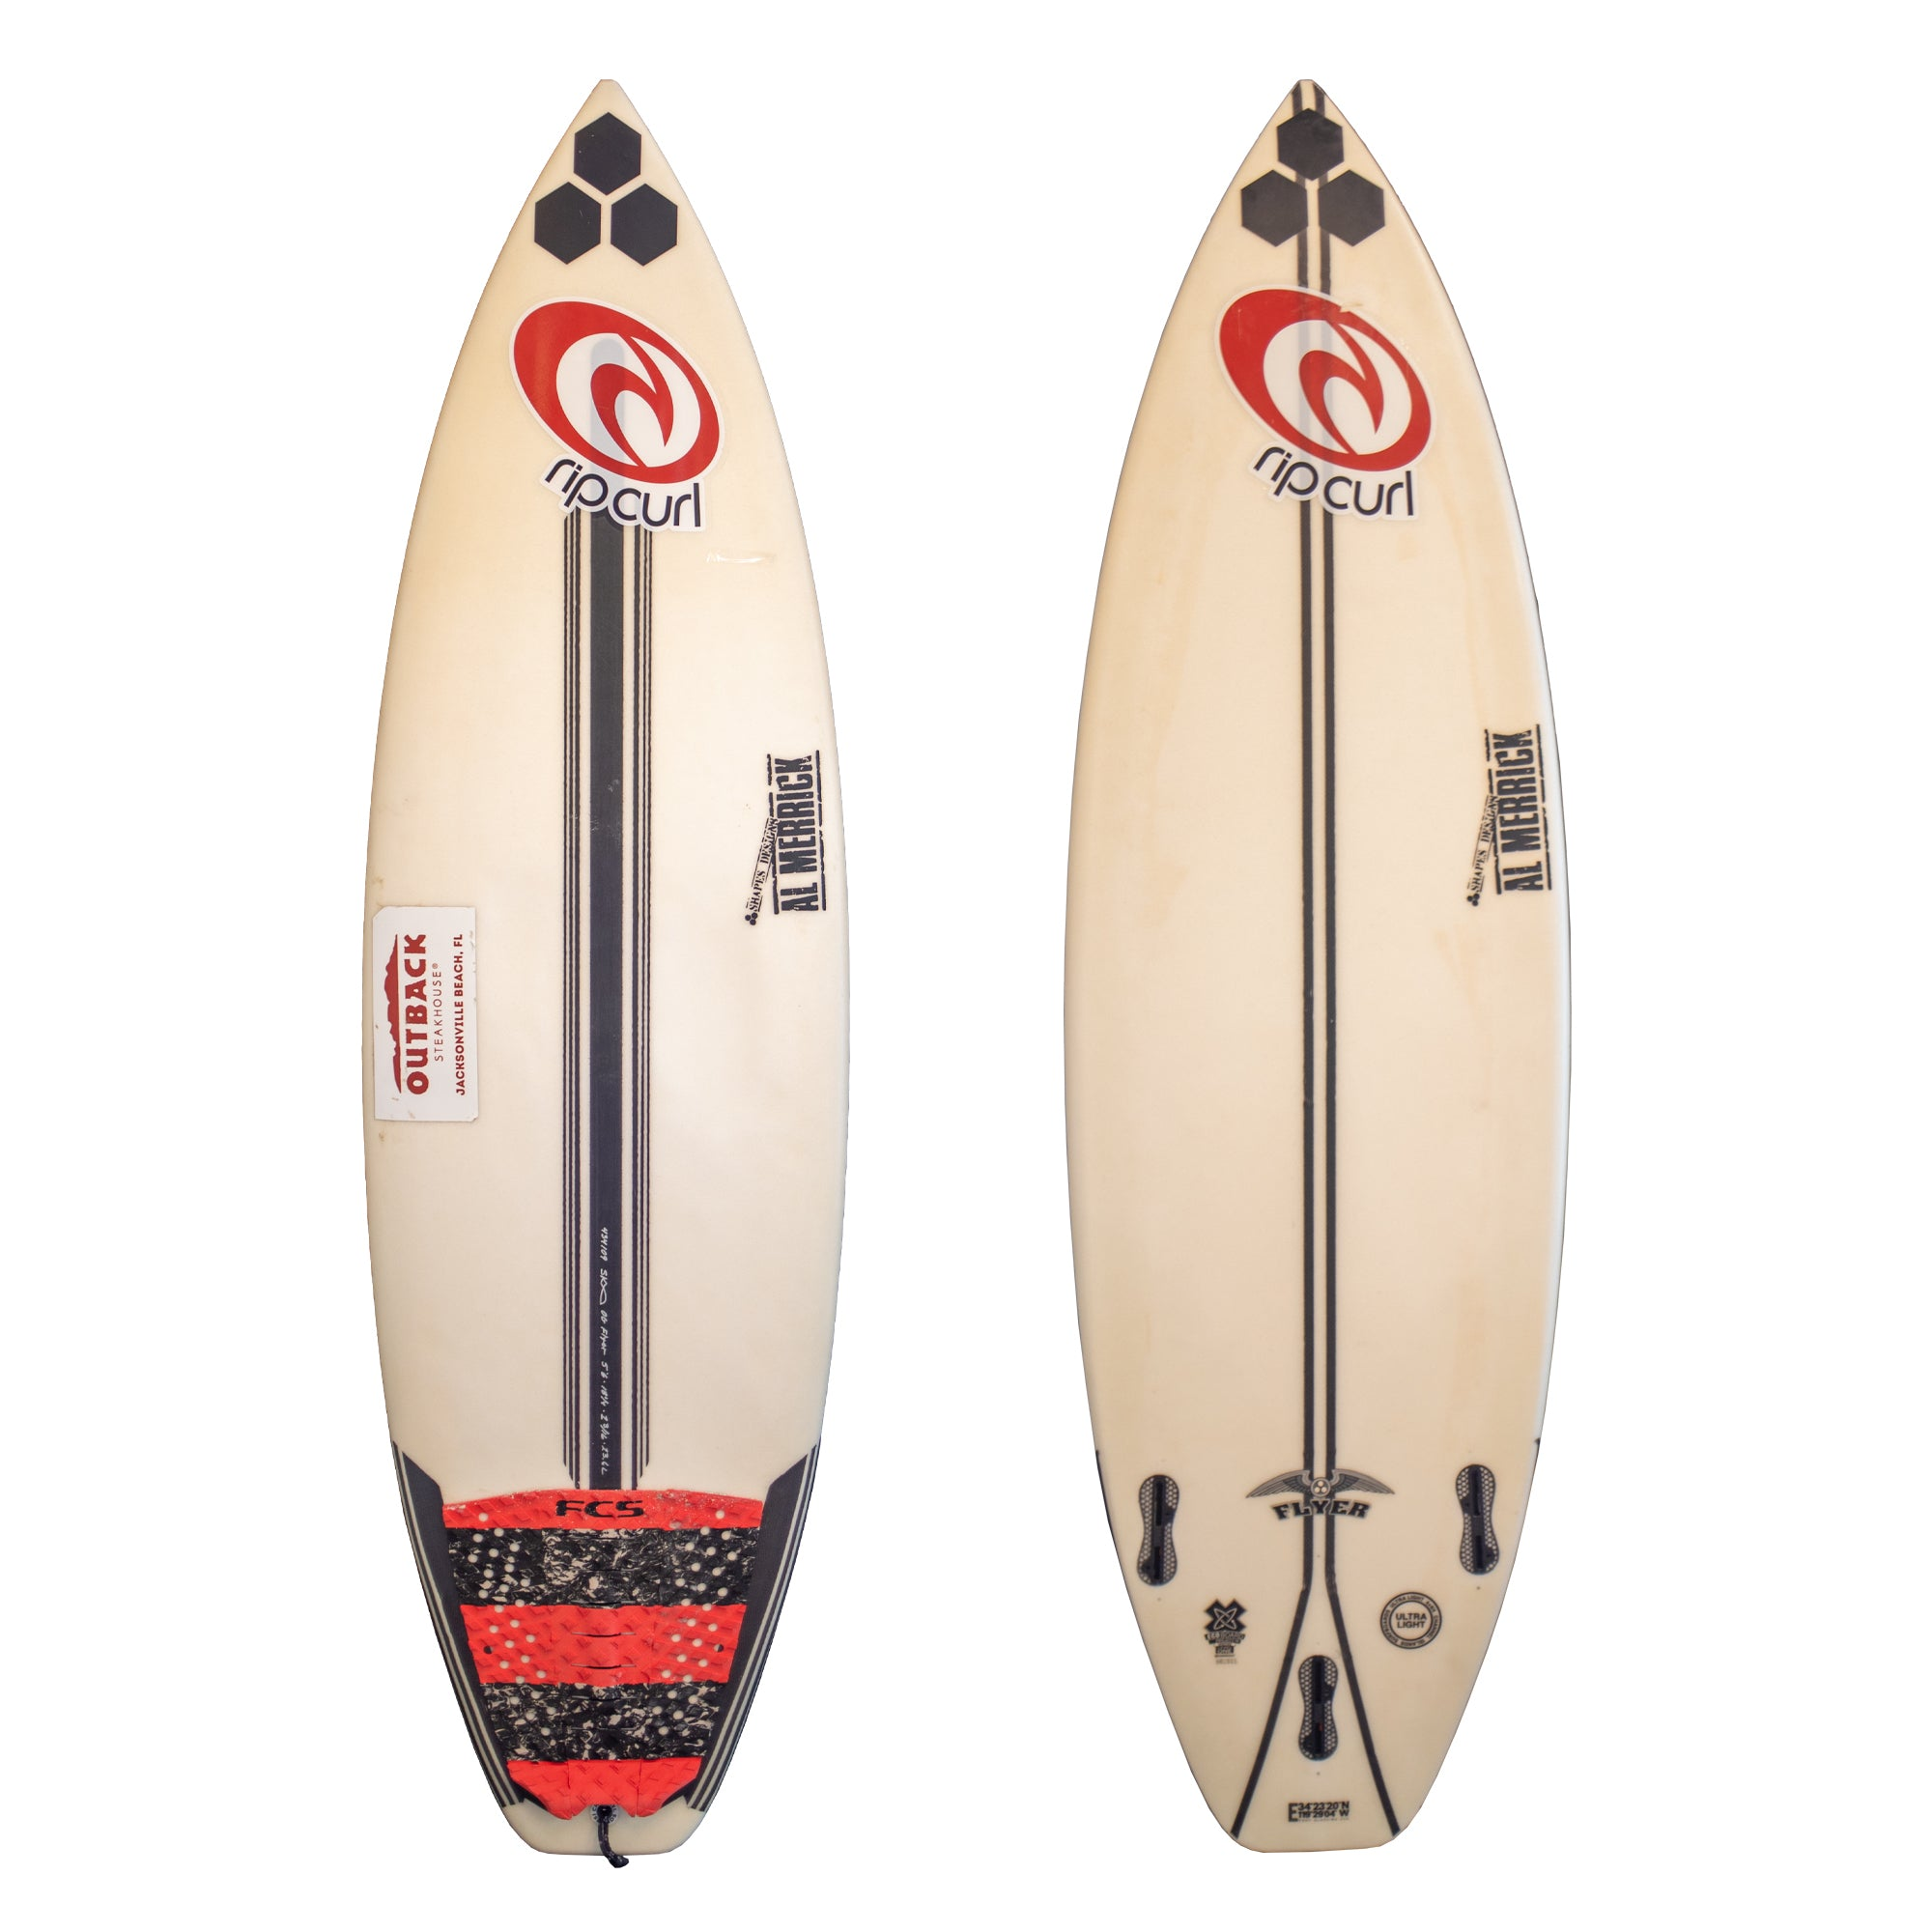 Channel Islands Flyer 5'6 Used Surfboard